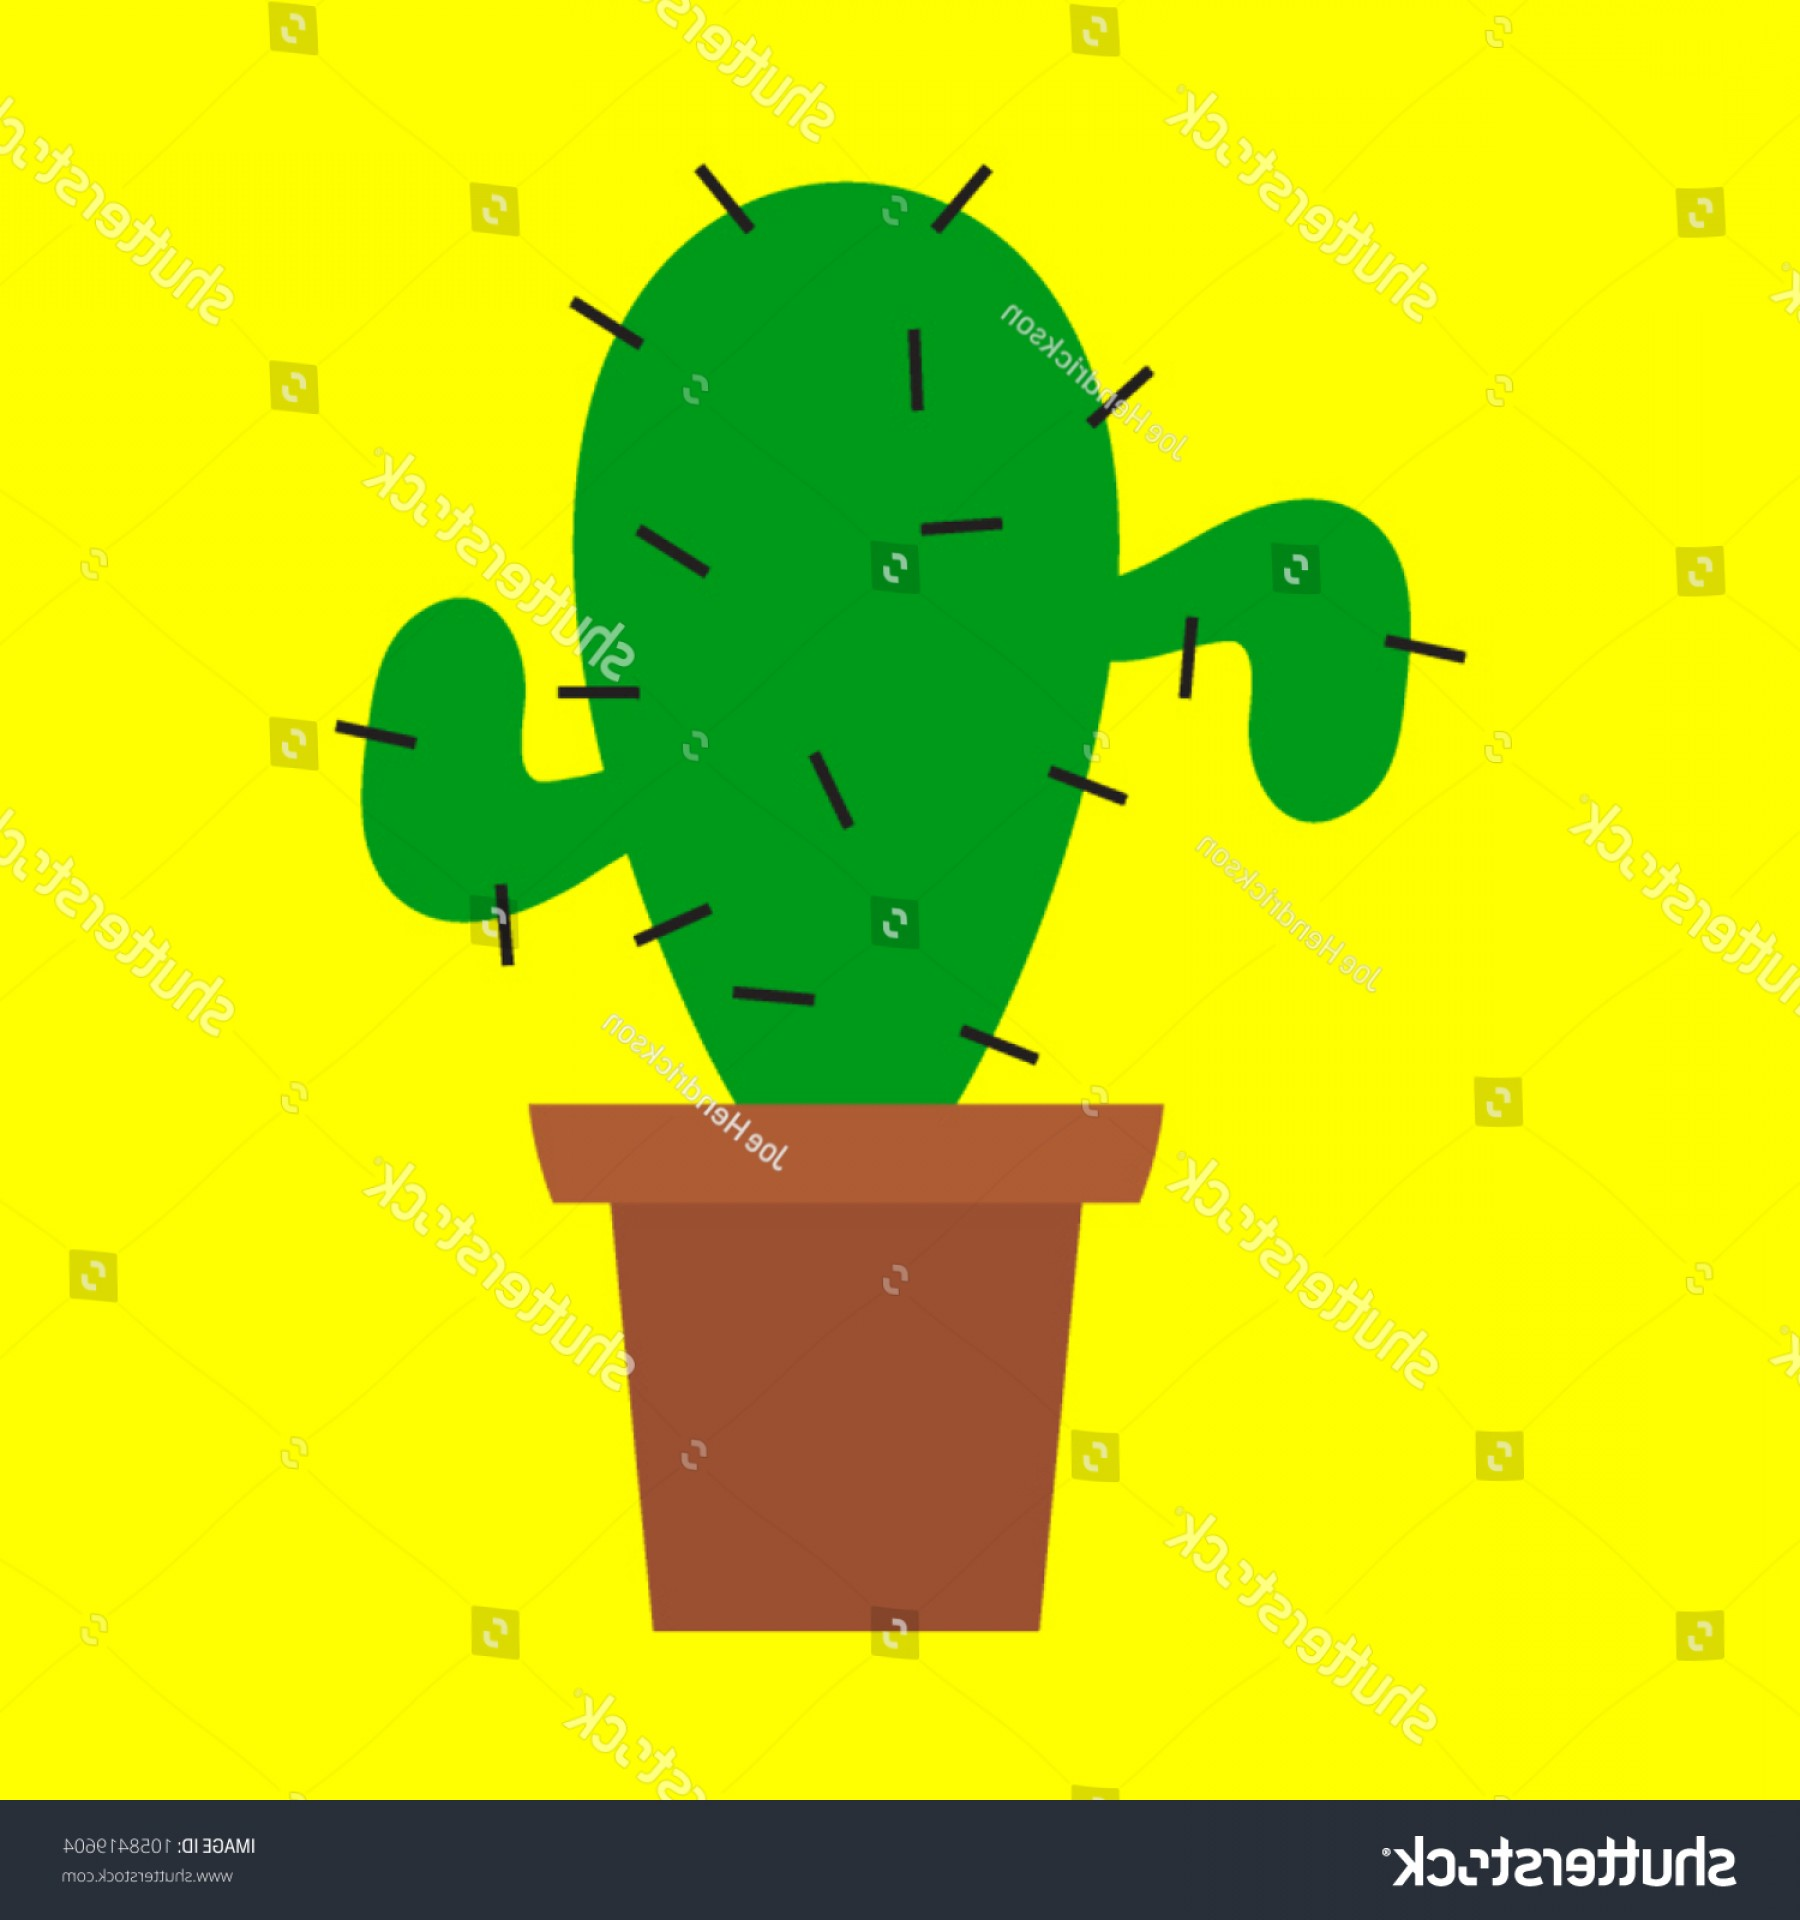 Potted Cactus Plant Vector: Simple Potted Cactus Plant Thorns Vector